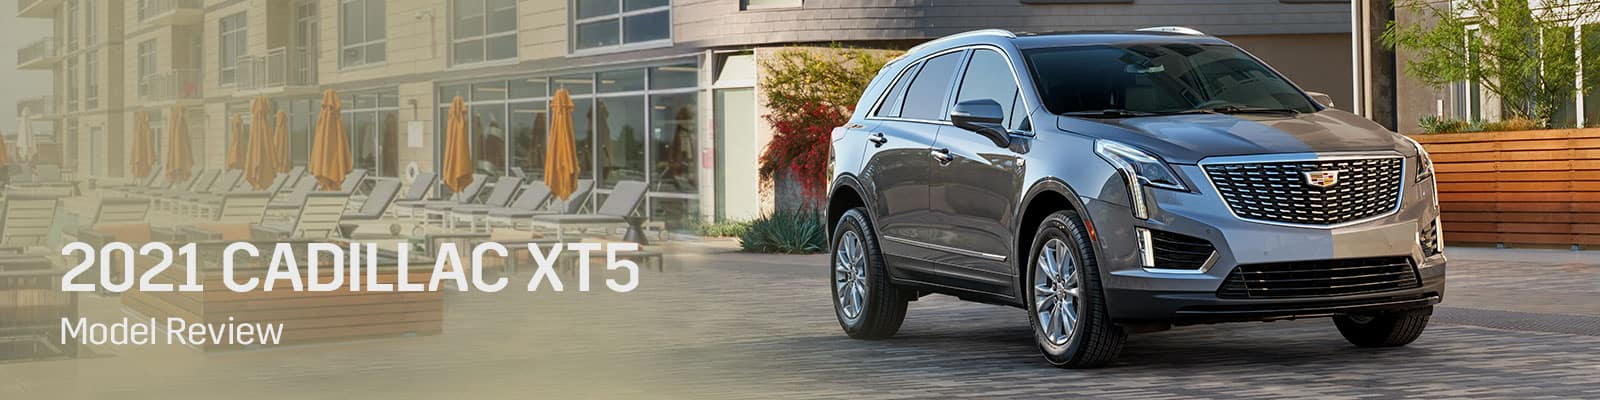 2021 Cadillac XT5 Model Overview - Germain Cadillac of Easton